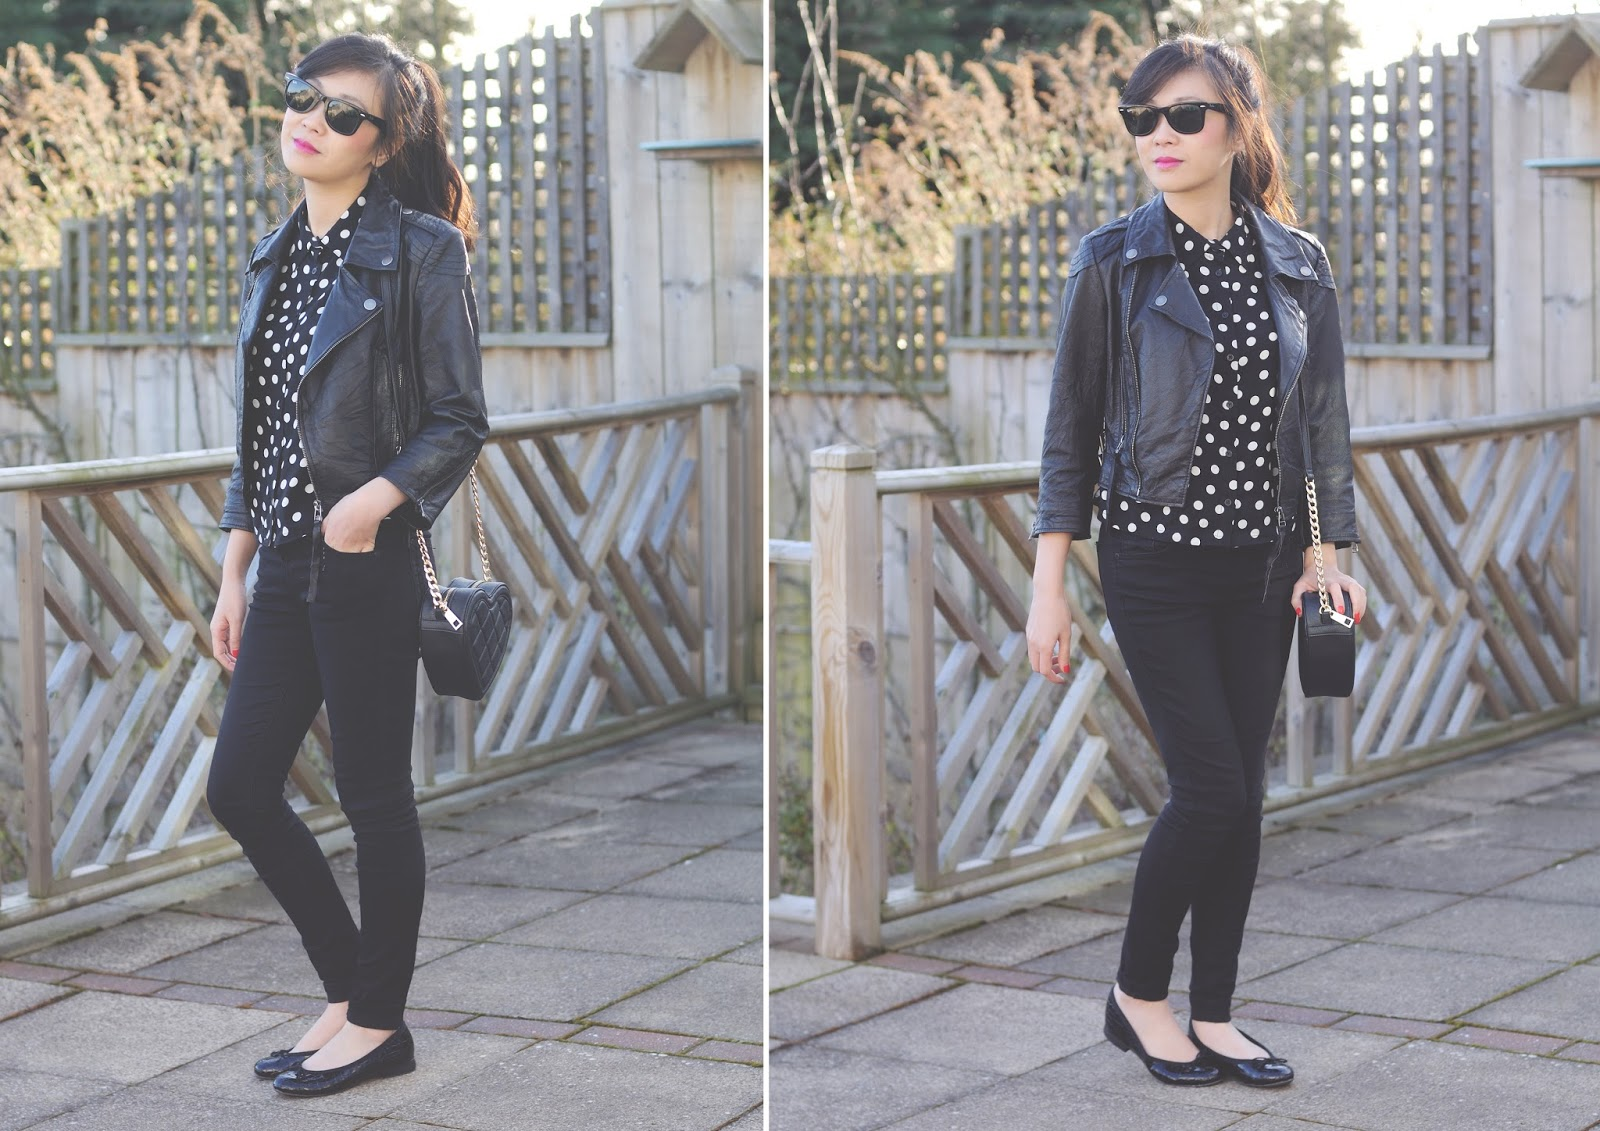 s/s 14 trend monochrome, how to wear polka dots, how to style a polka dot shirt